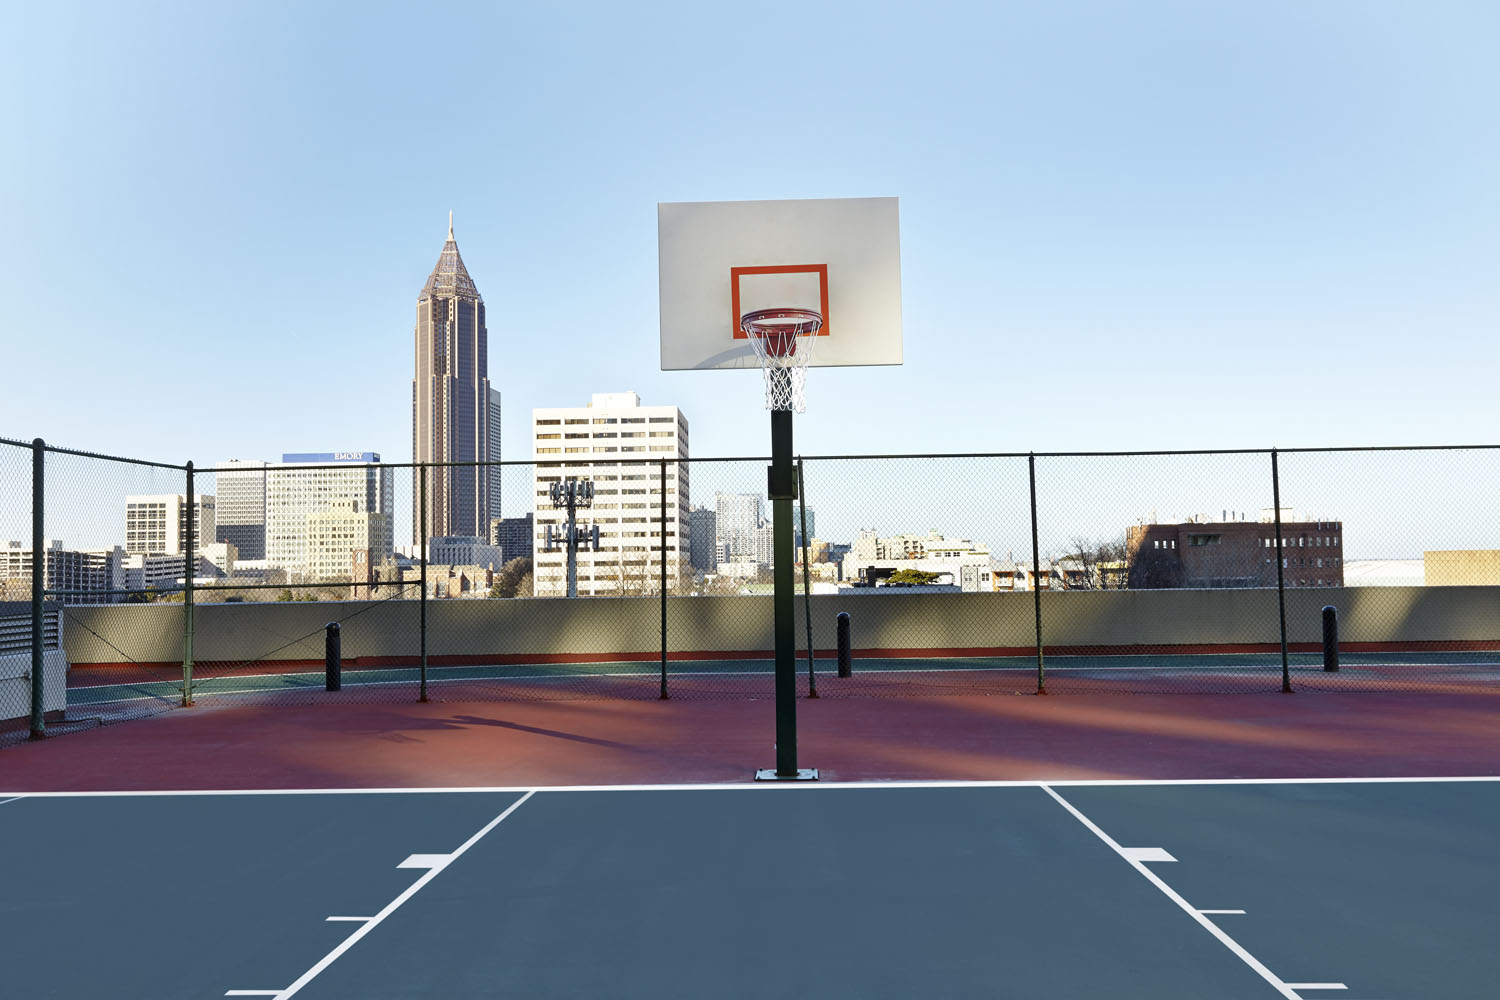 Hilton Atl rooftop Basketball court & running track